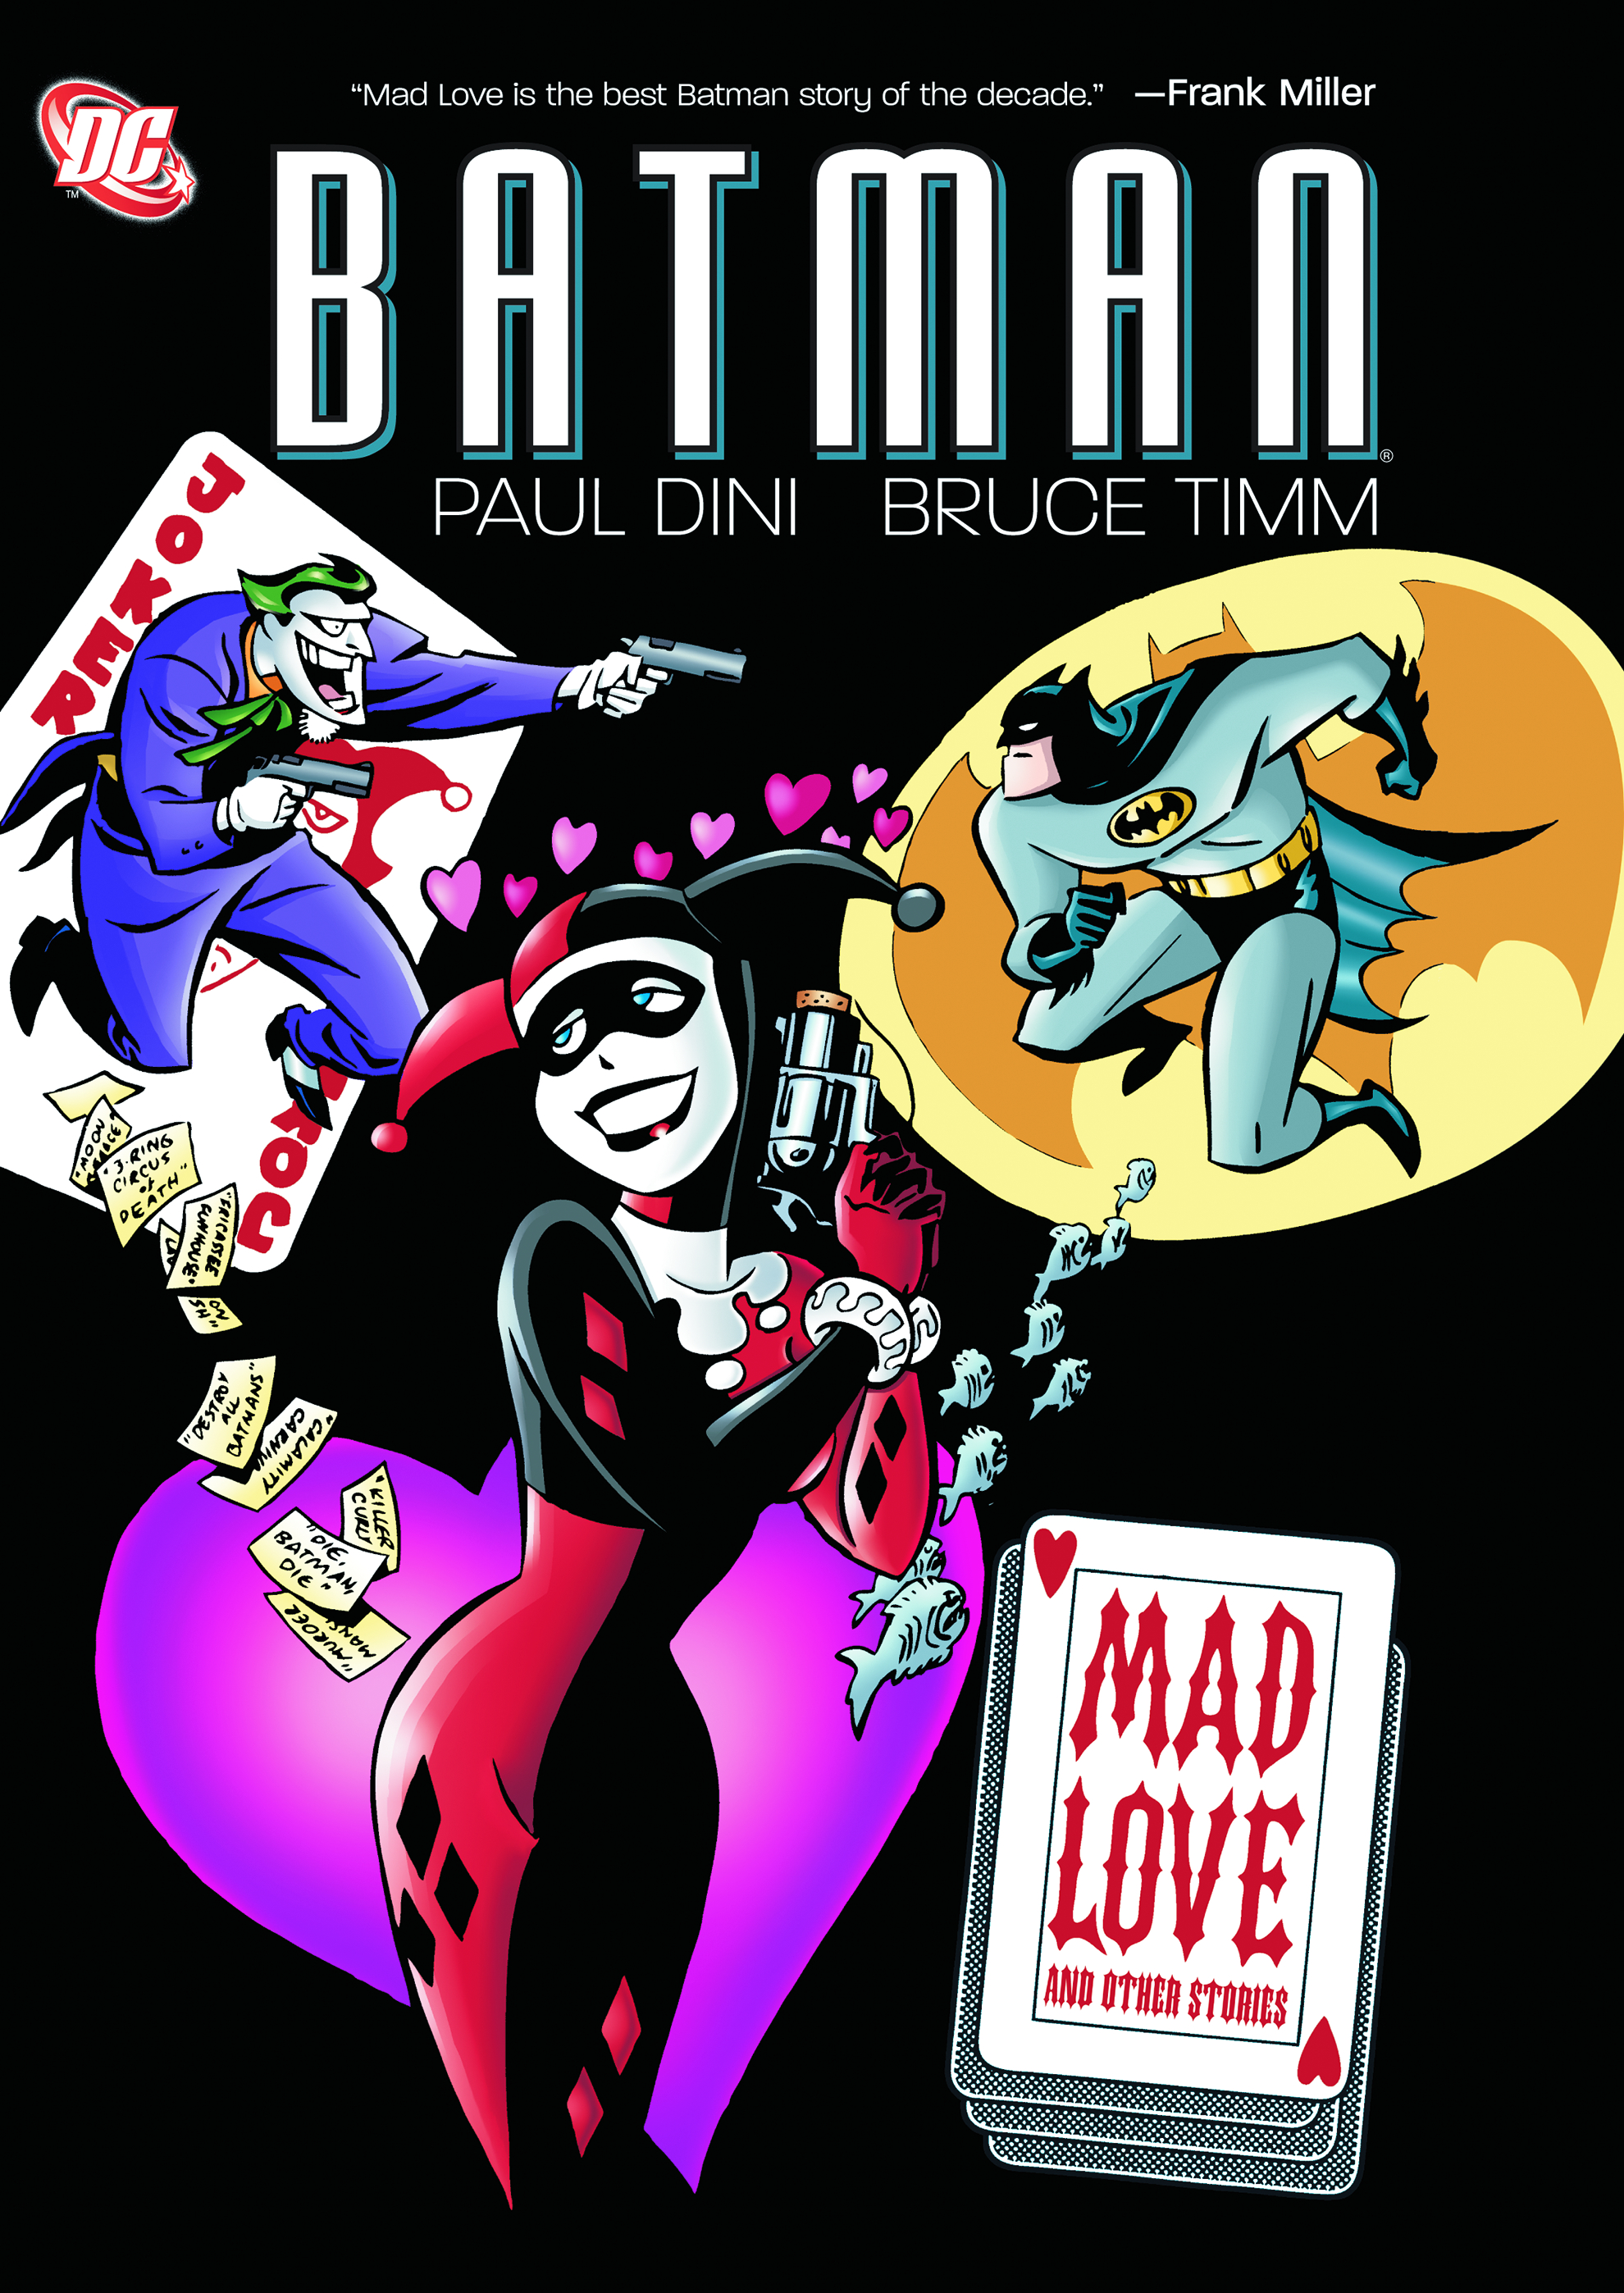 BATMAN MAD LOVE AND OTHER STORIES TP